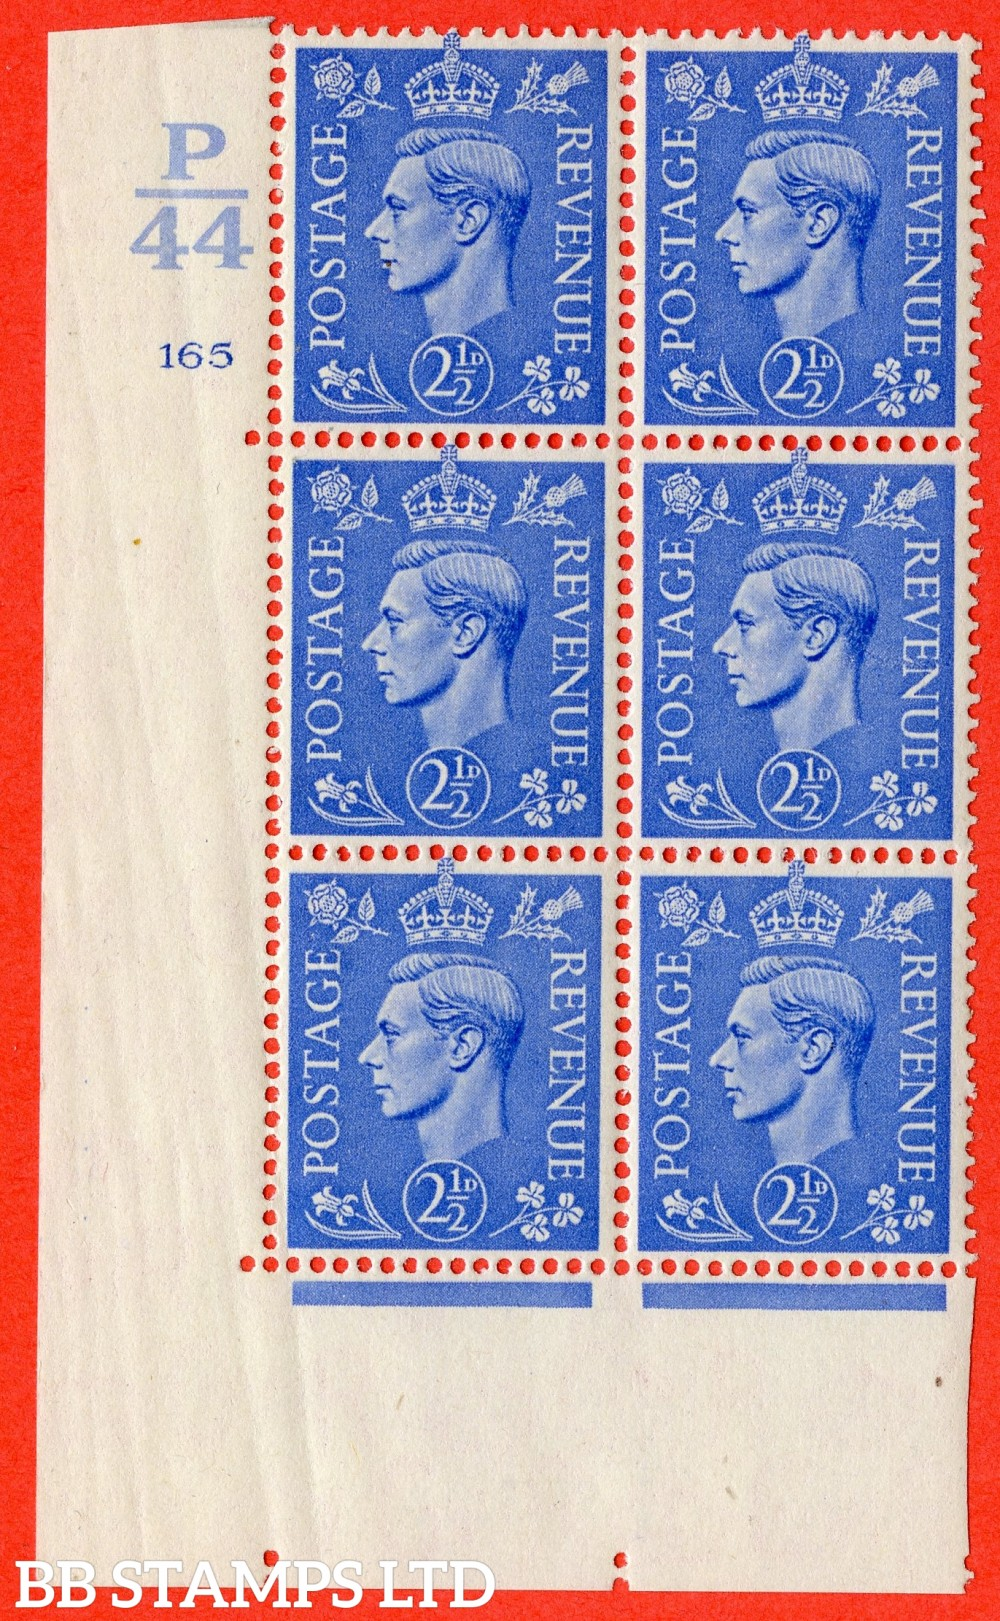 "SG. 489. Q14. 2½d Light ultramarine. A suberb UNMOUNTED MINT "" Control  P44 cylinder 165 no dot "" control block of 6 with perf type 5 E/I. Crease in margin."